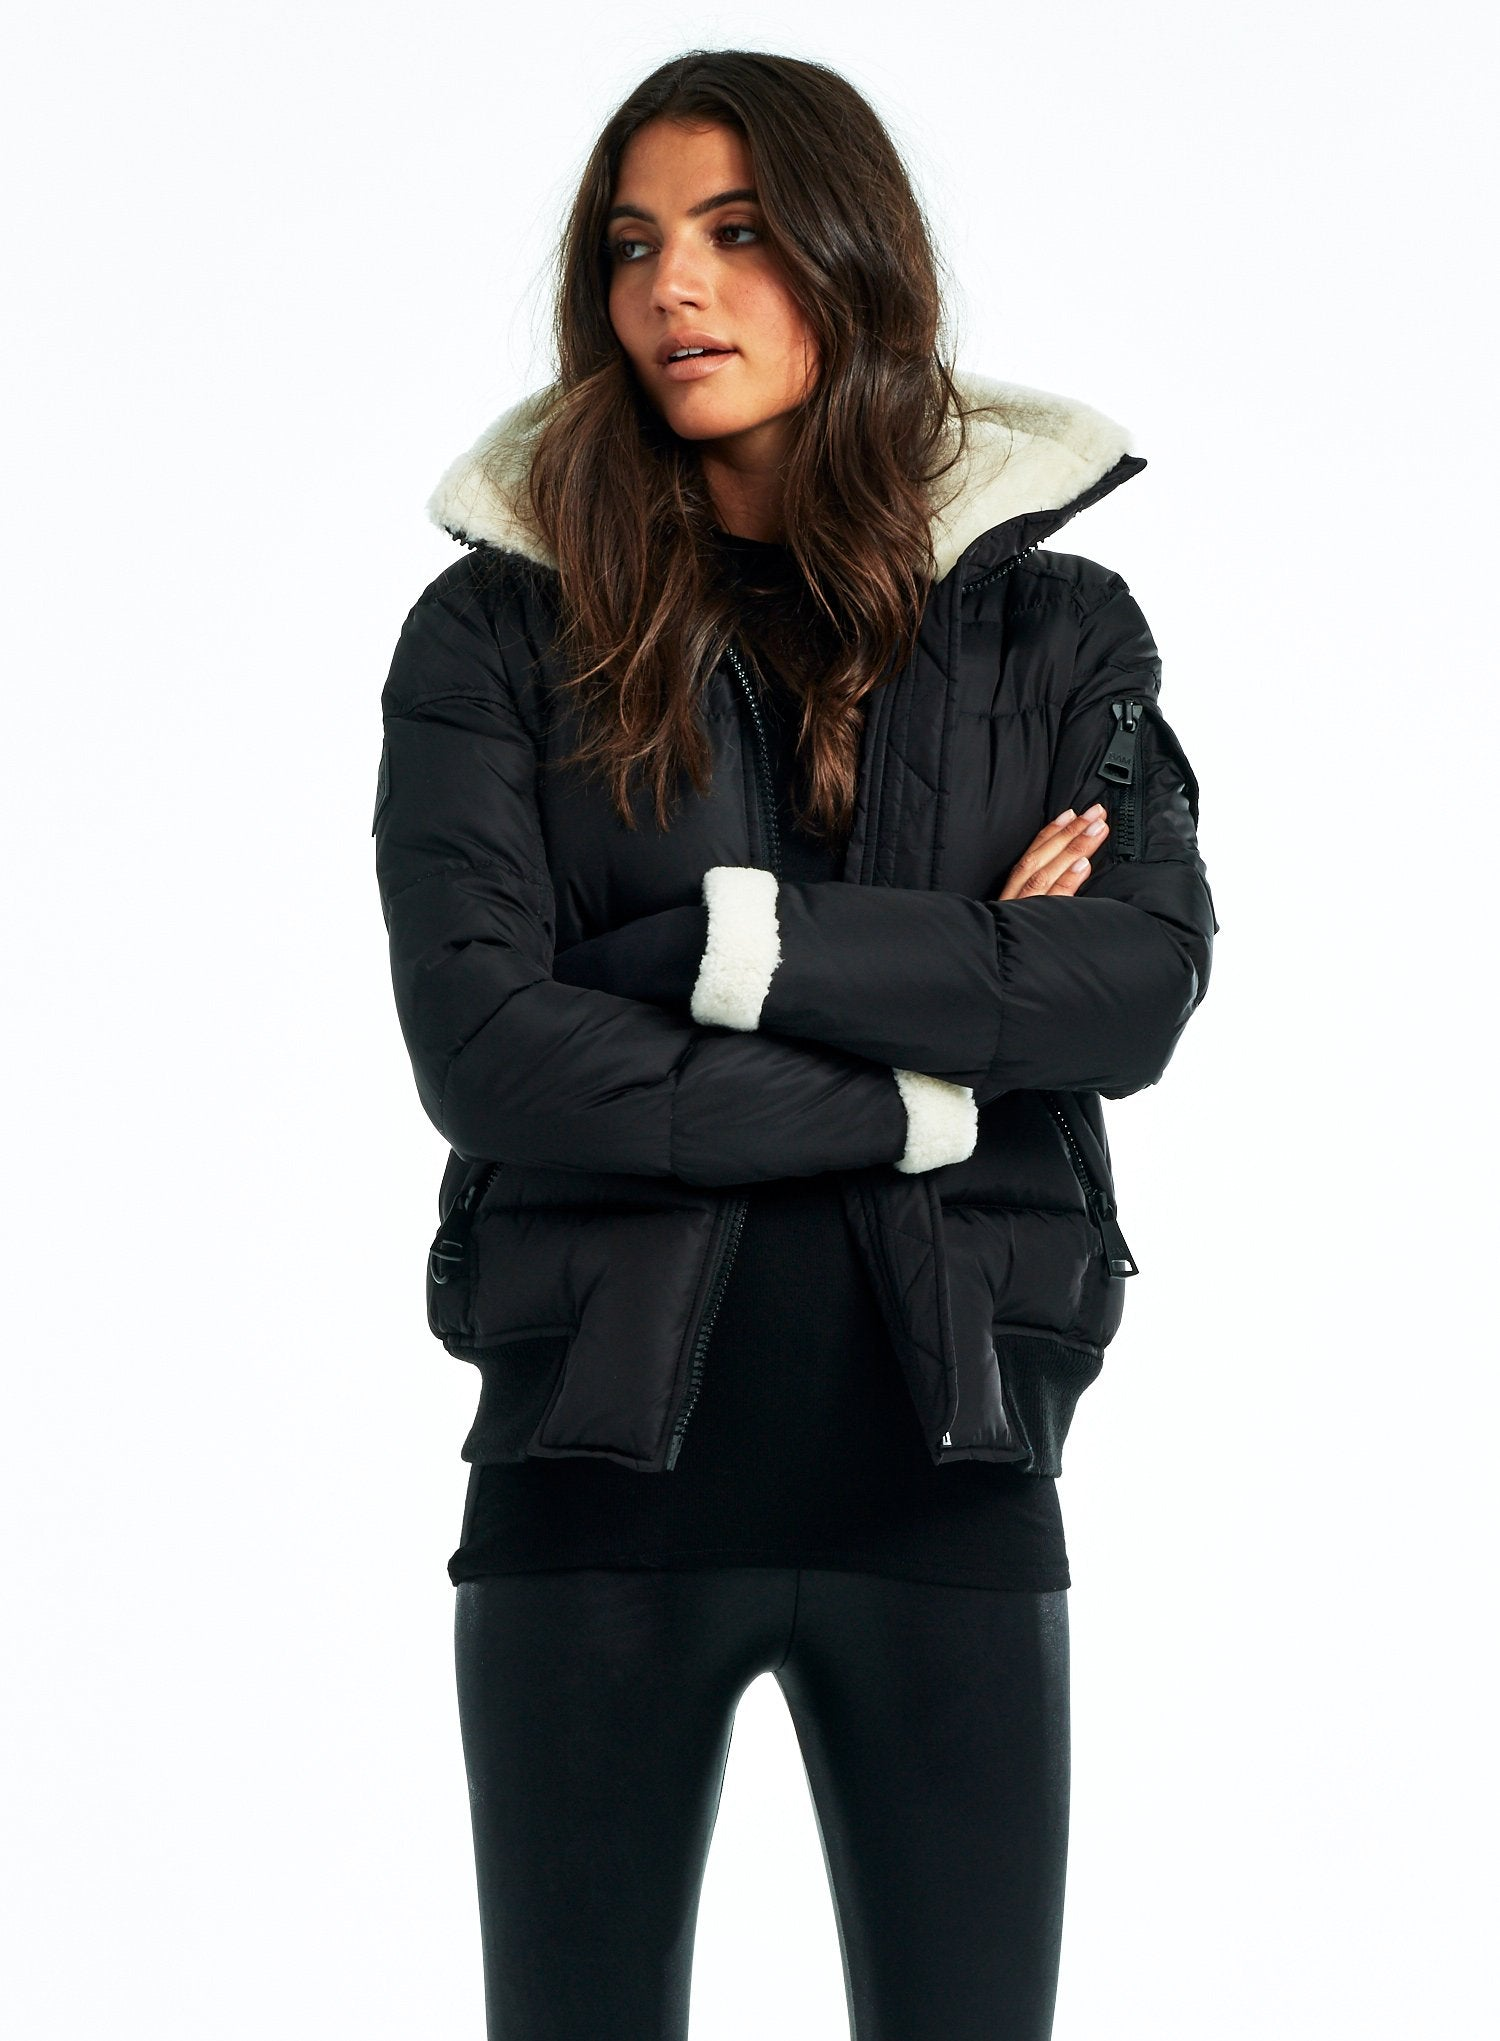 NIKKI NIKKI - SAM. New York Sam nyc jacket